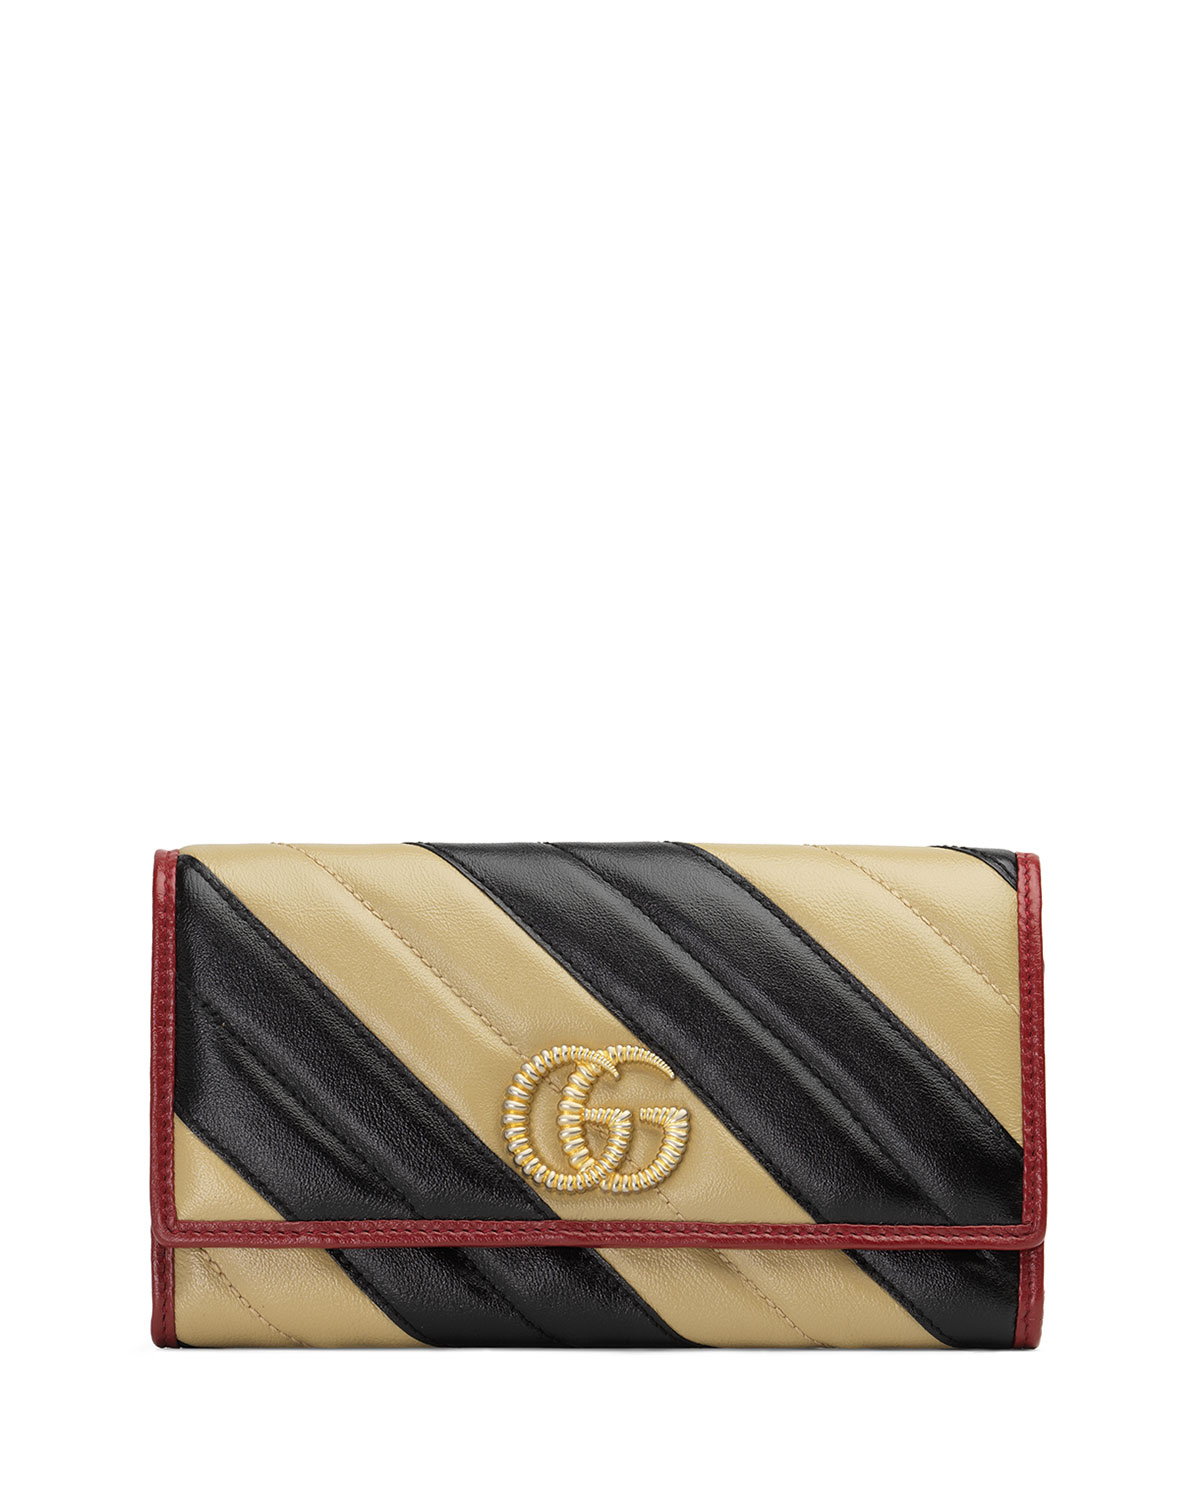 9b2b2d054b6c Gucci Gg Marmont Torchon Continental Wallet In Black/White ...